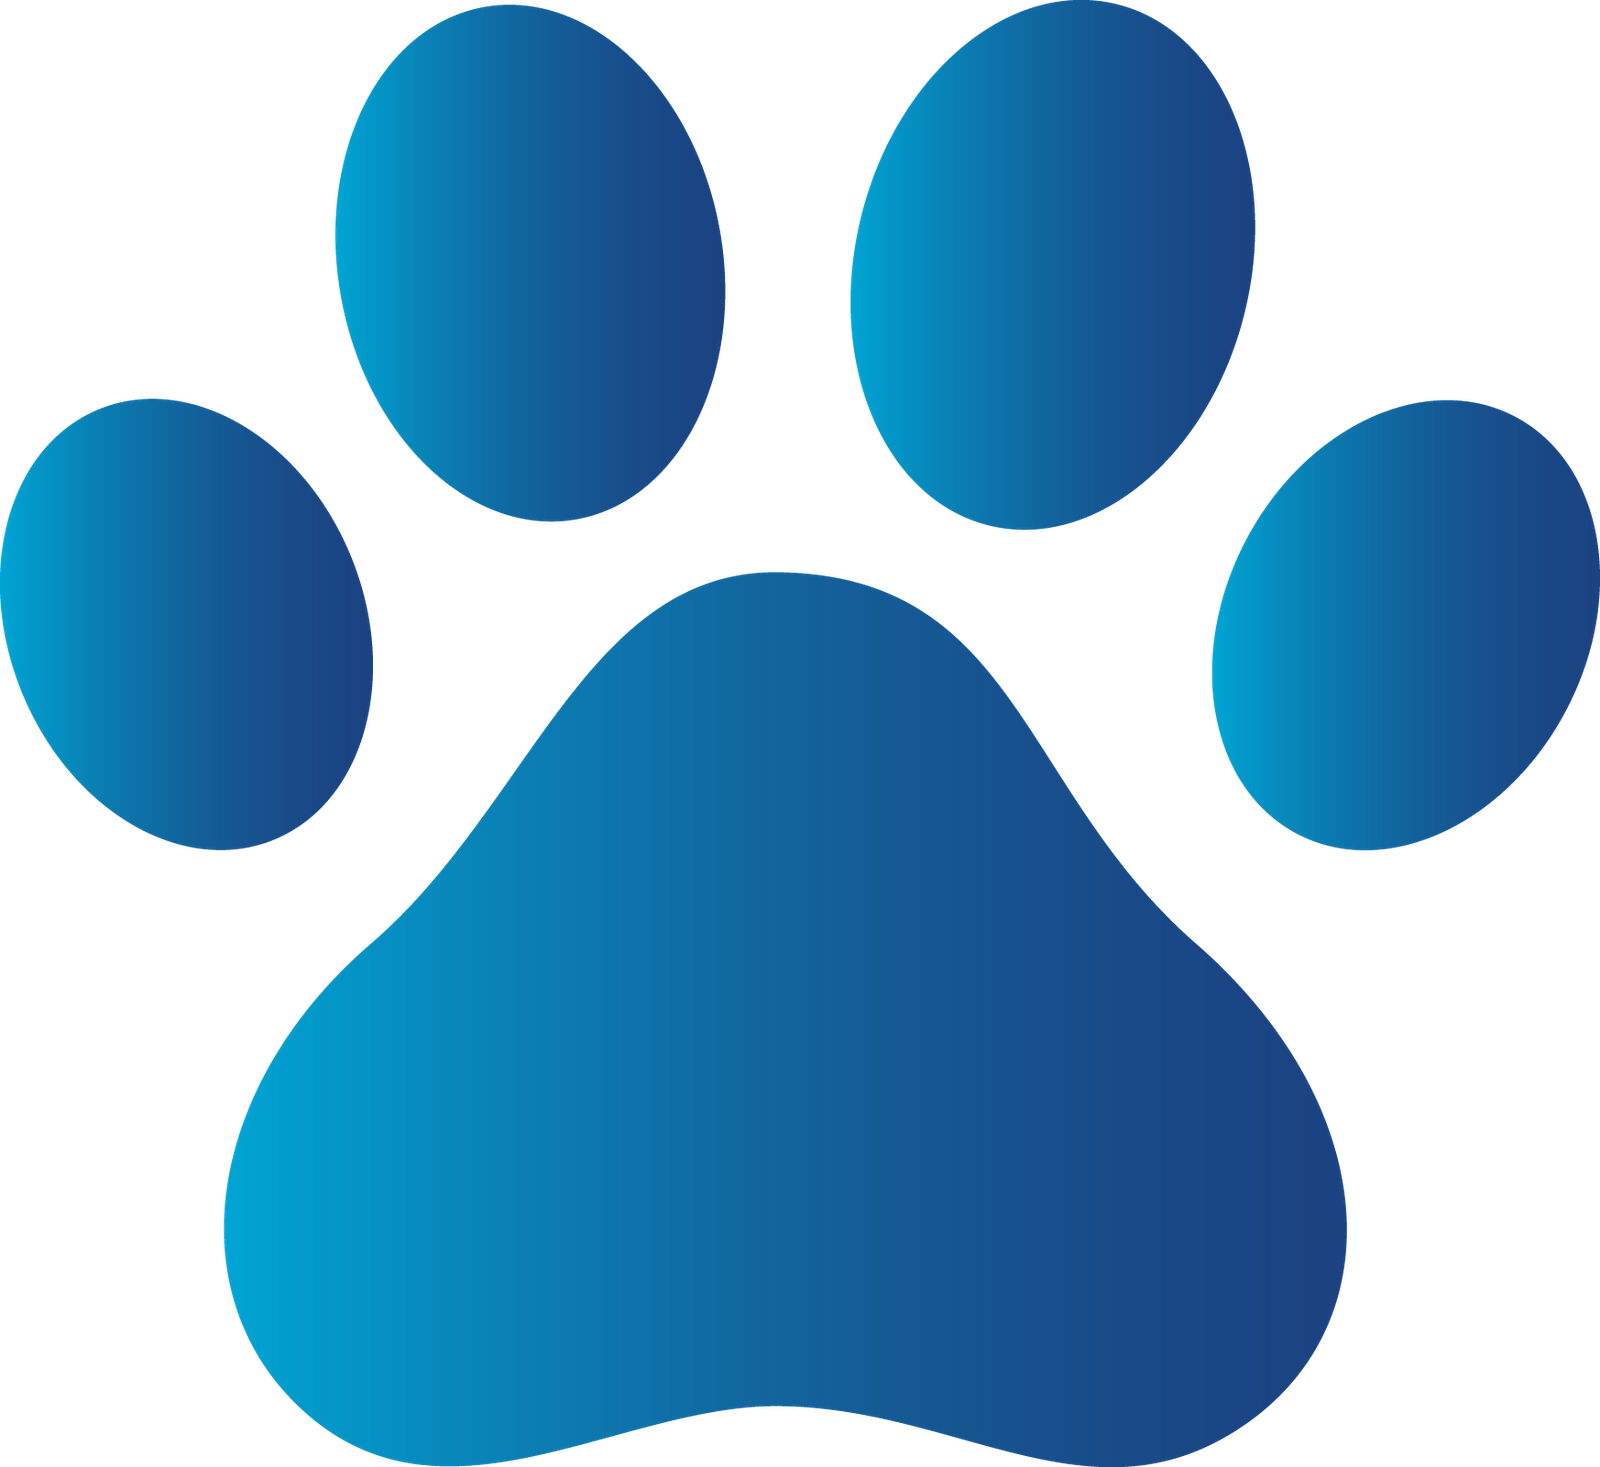 Paw clip art animal. Canine connections stop abuse